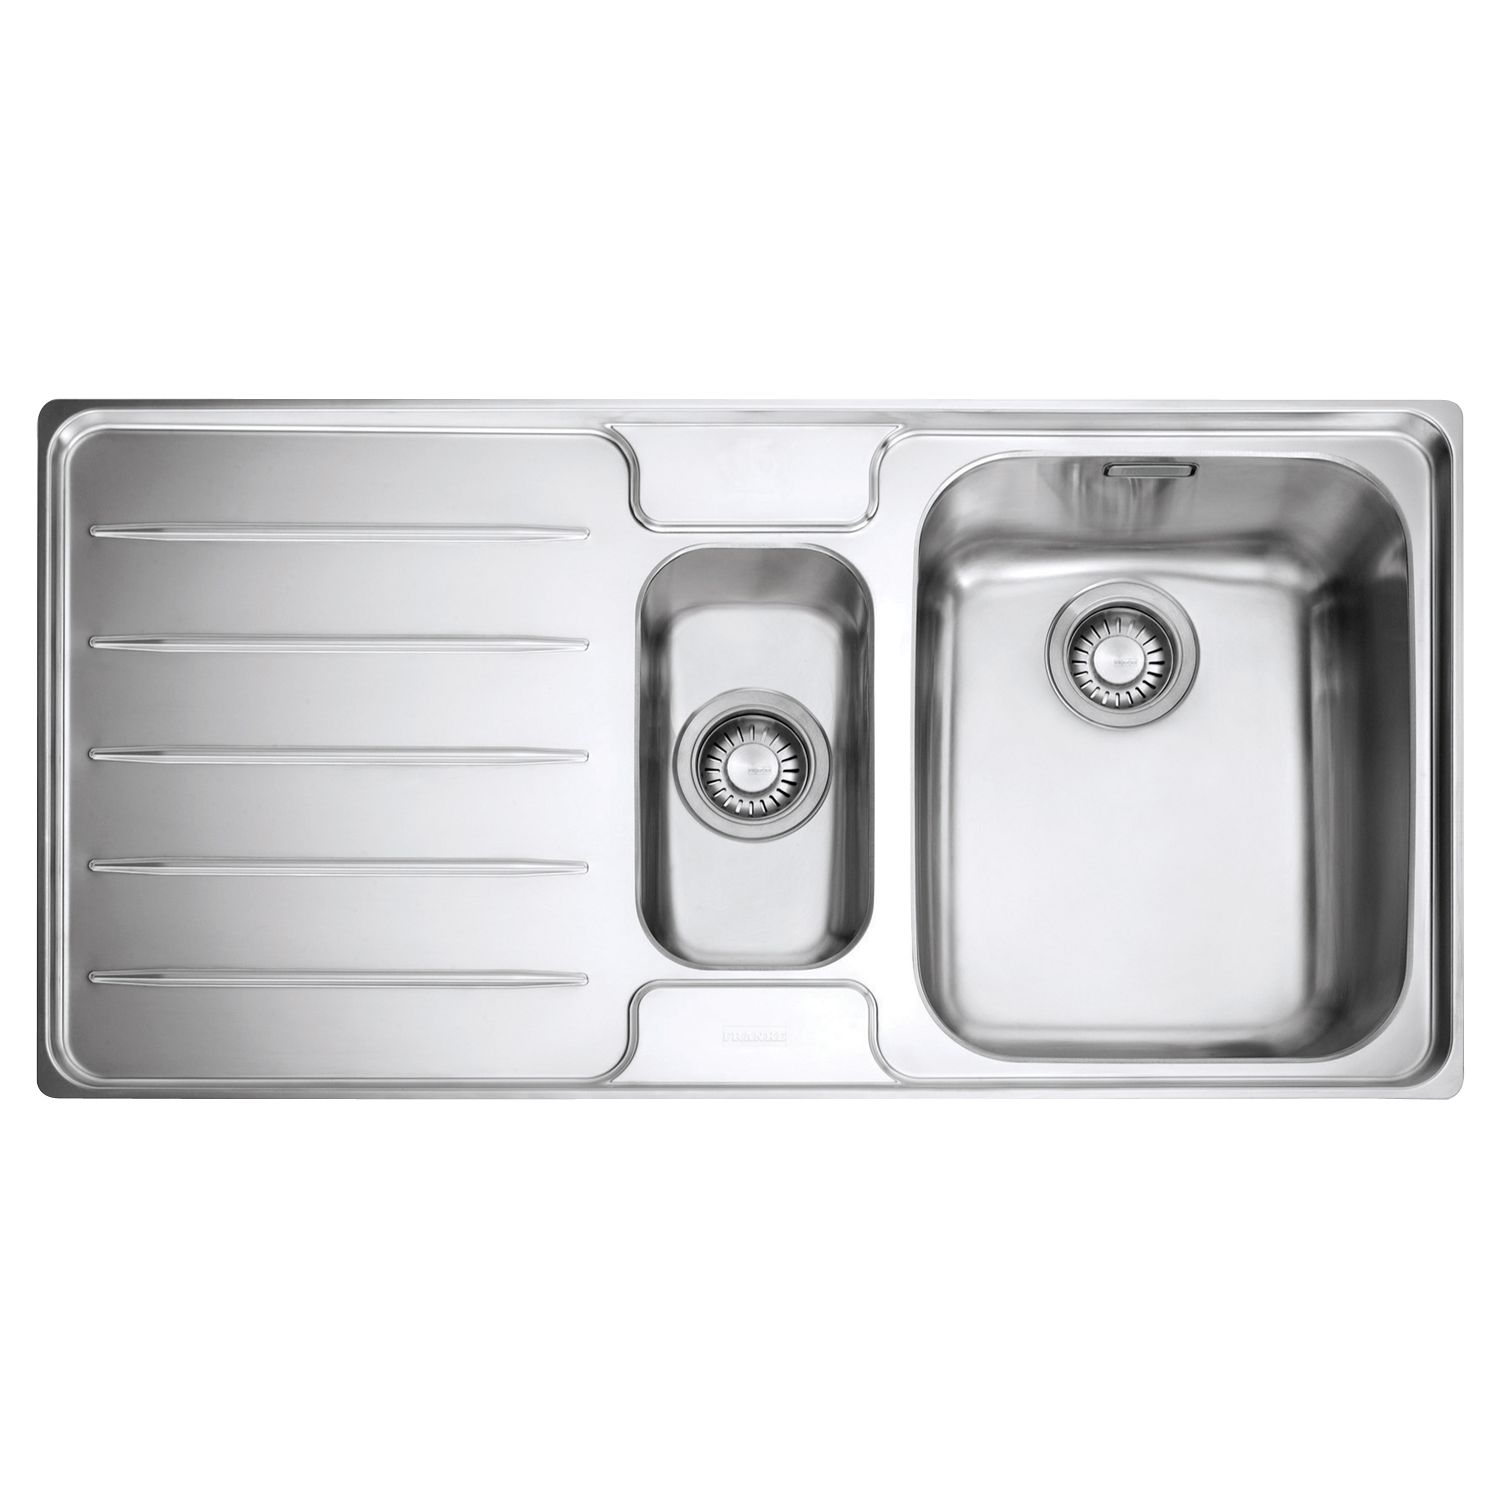 Franke Franke Laser LSX 651 1.5 Sink with Right Hand Bowl, Stainless Steel